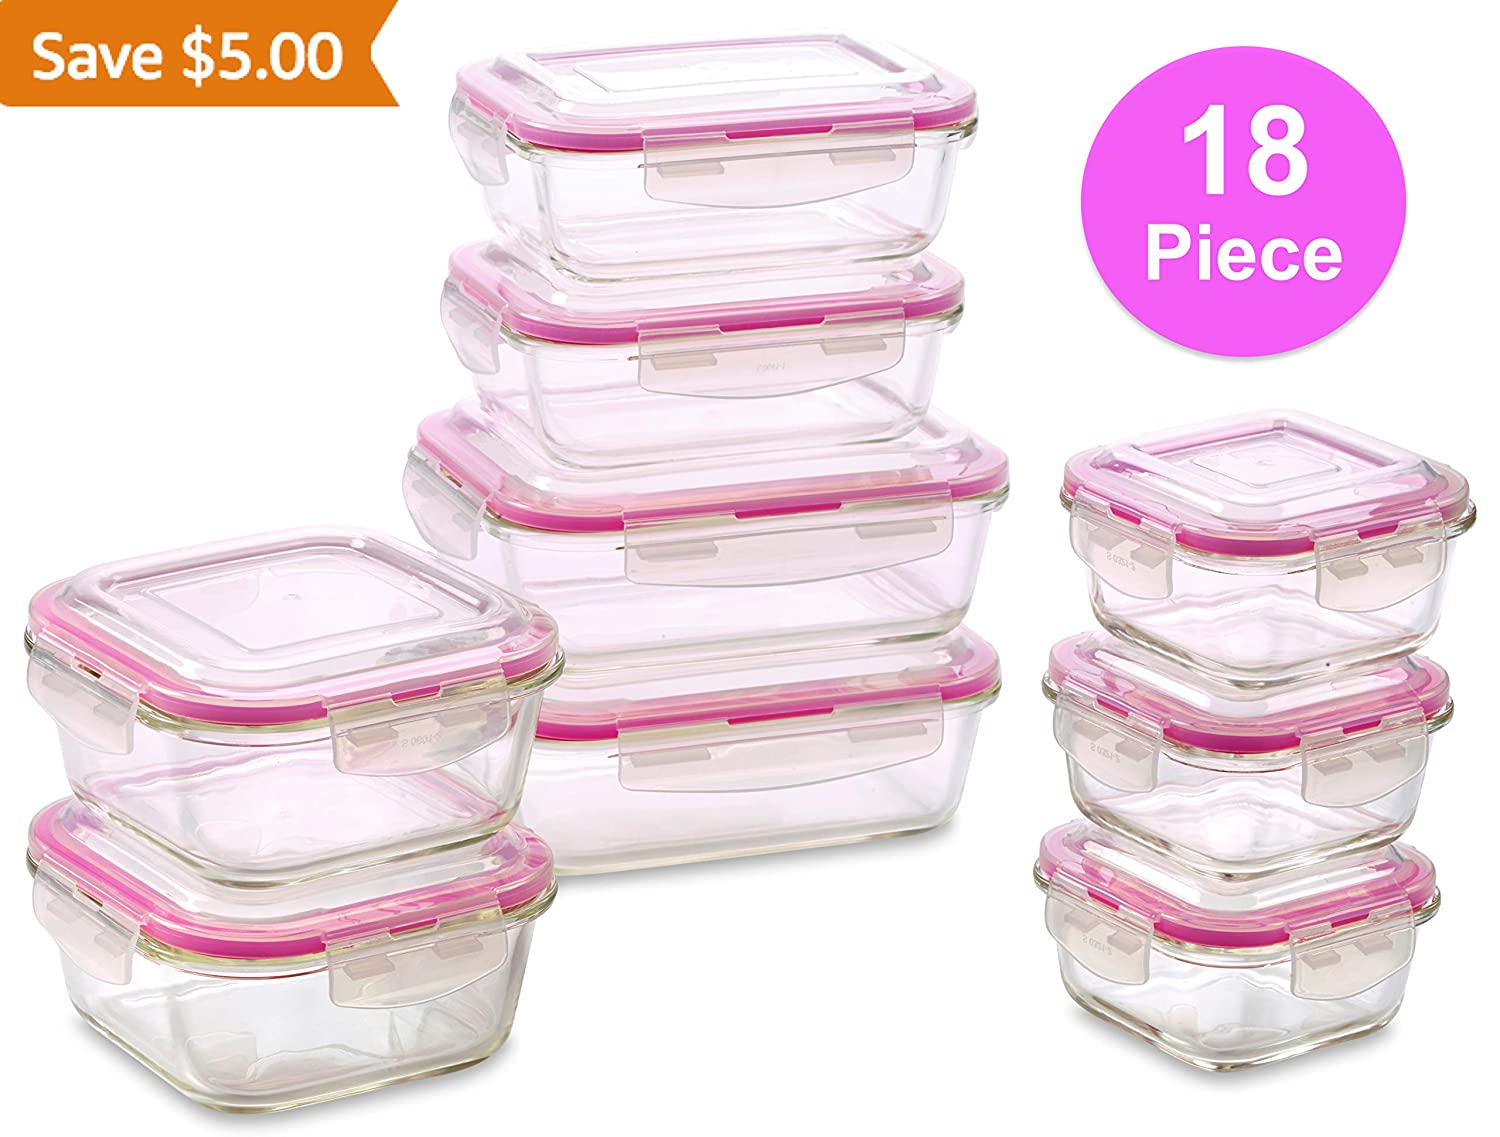 WonderVeg Glass Food Storage Containers - 18 Piece - BPA Free - Dishwasher Safe - Oven Safe - Airtight Seal - Reusable Food Container Set - Use for Home, Kitchen and Restaurant